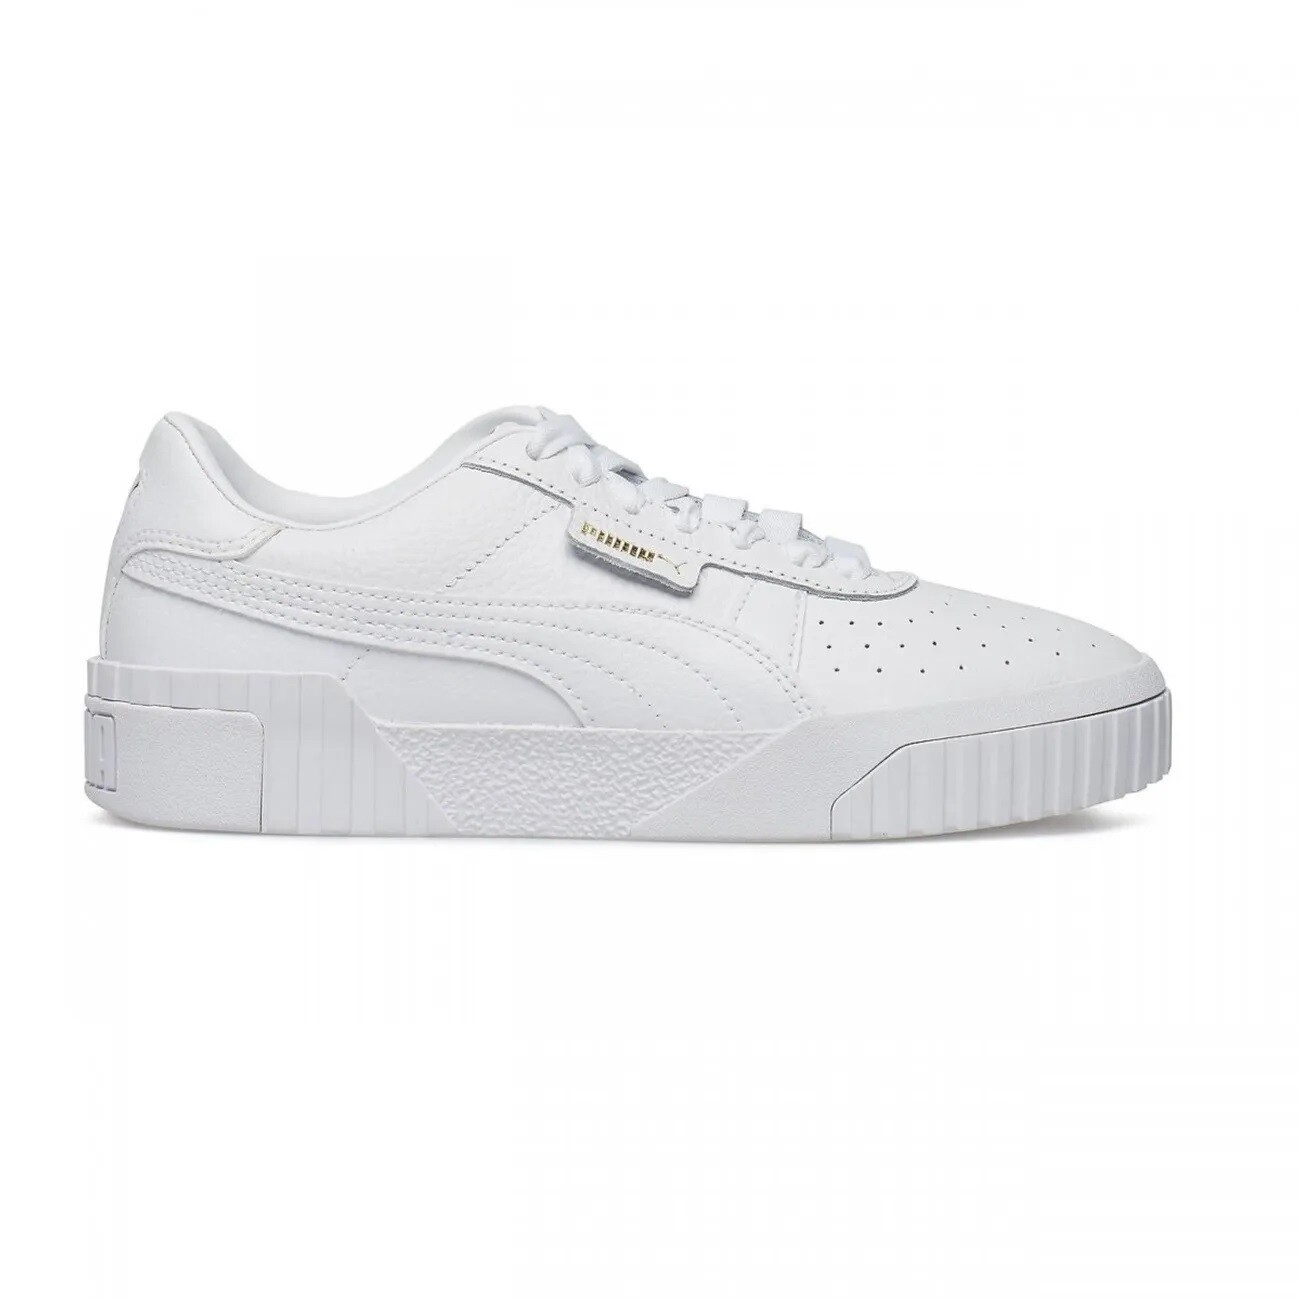 PUMA Basket mode Puma Cali Wn's 36915501